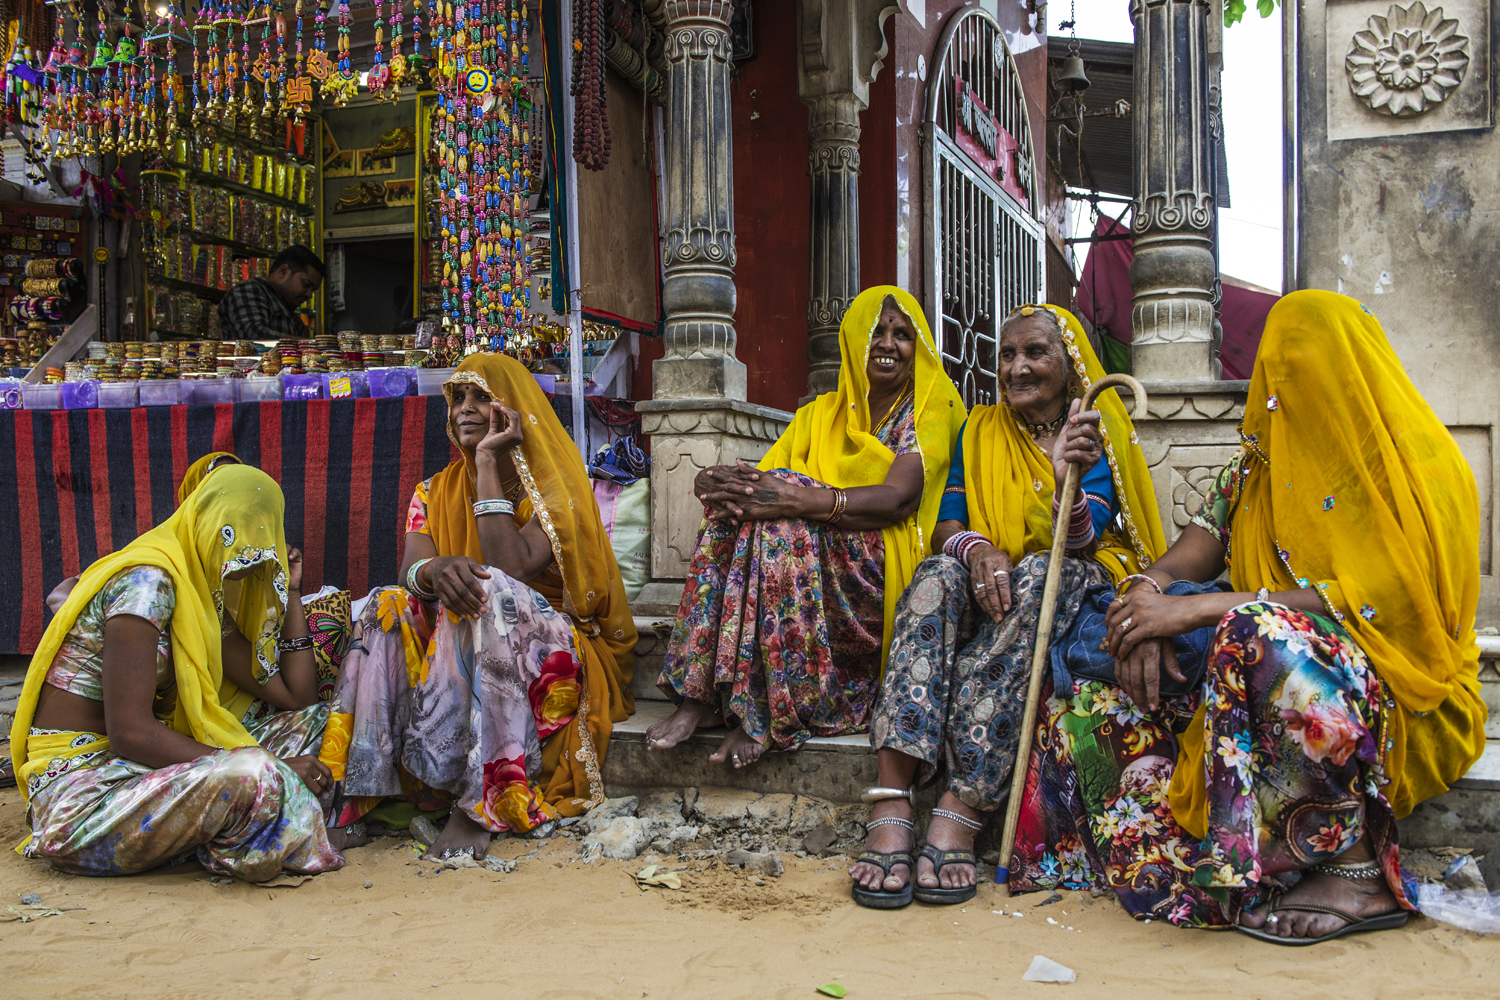 Women in Pushkar...